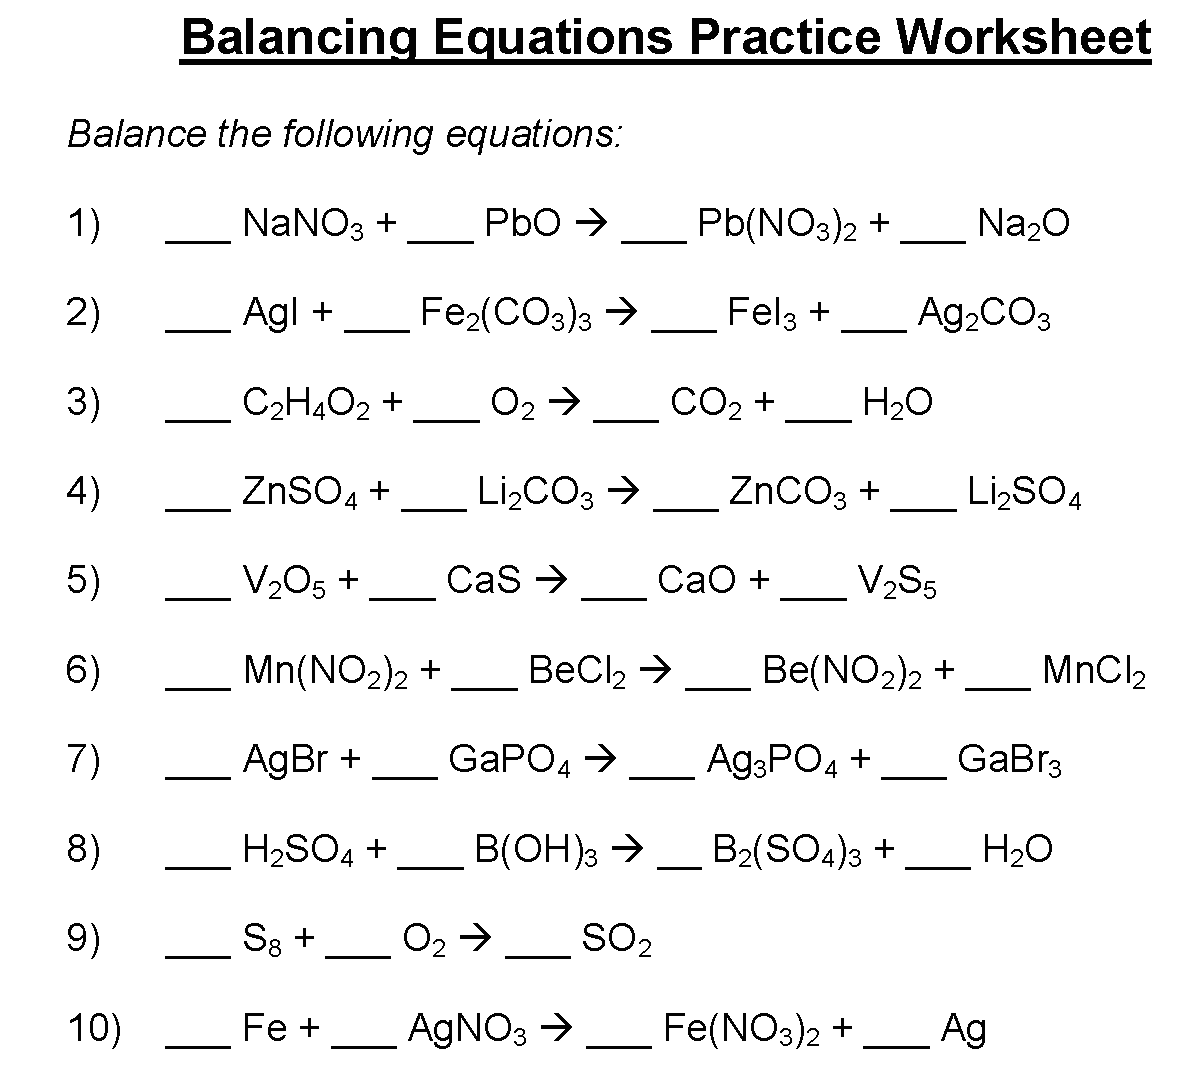 Worksheets Balancing Equations Practice Worksheet